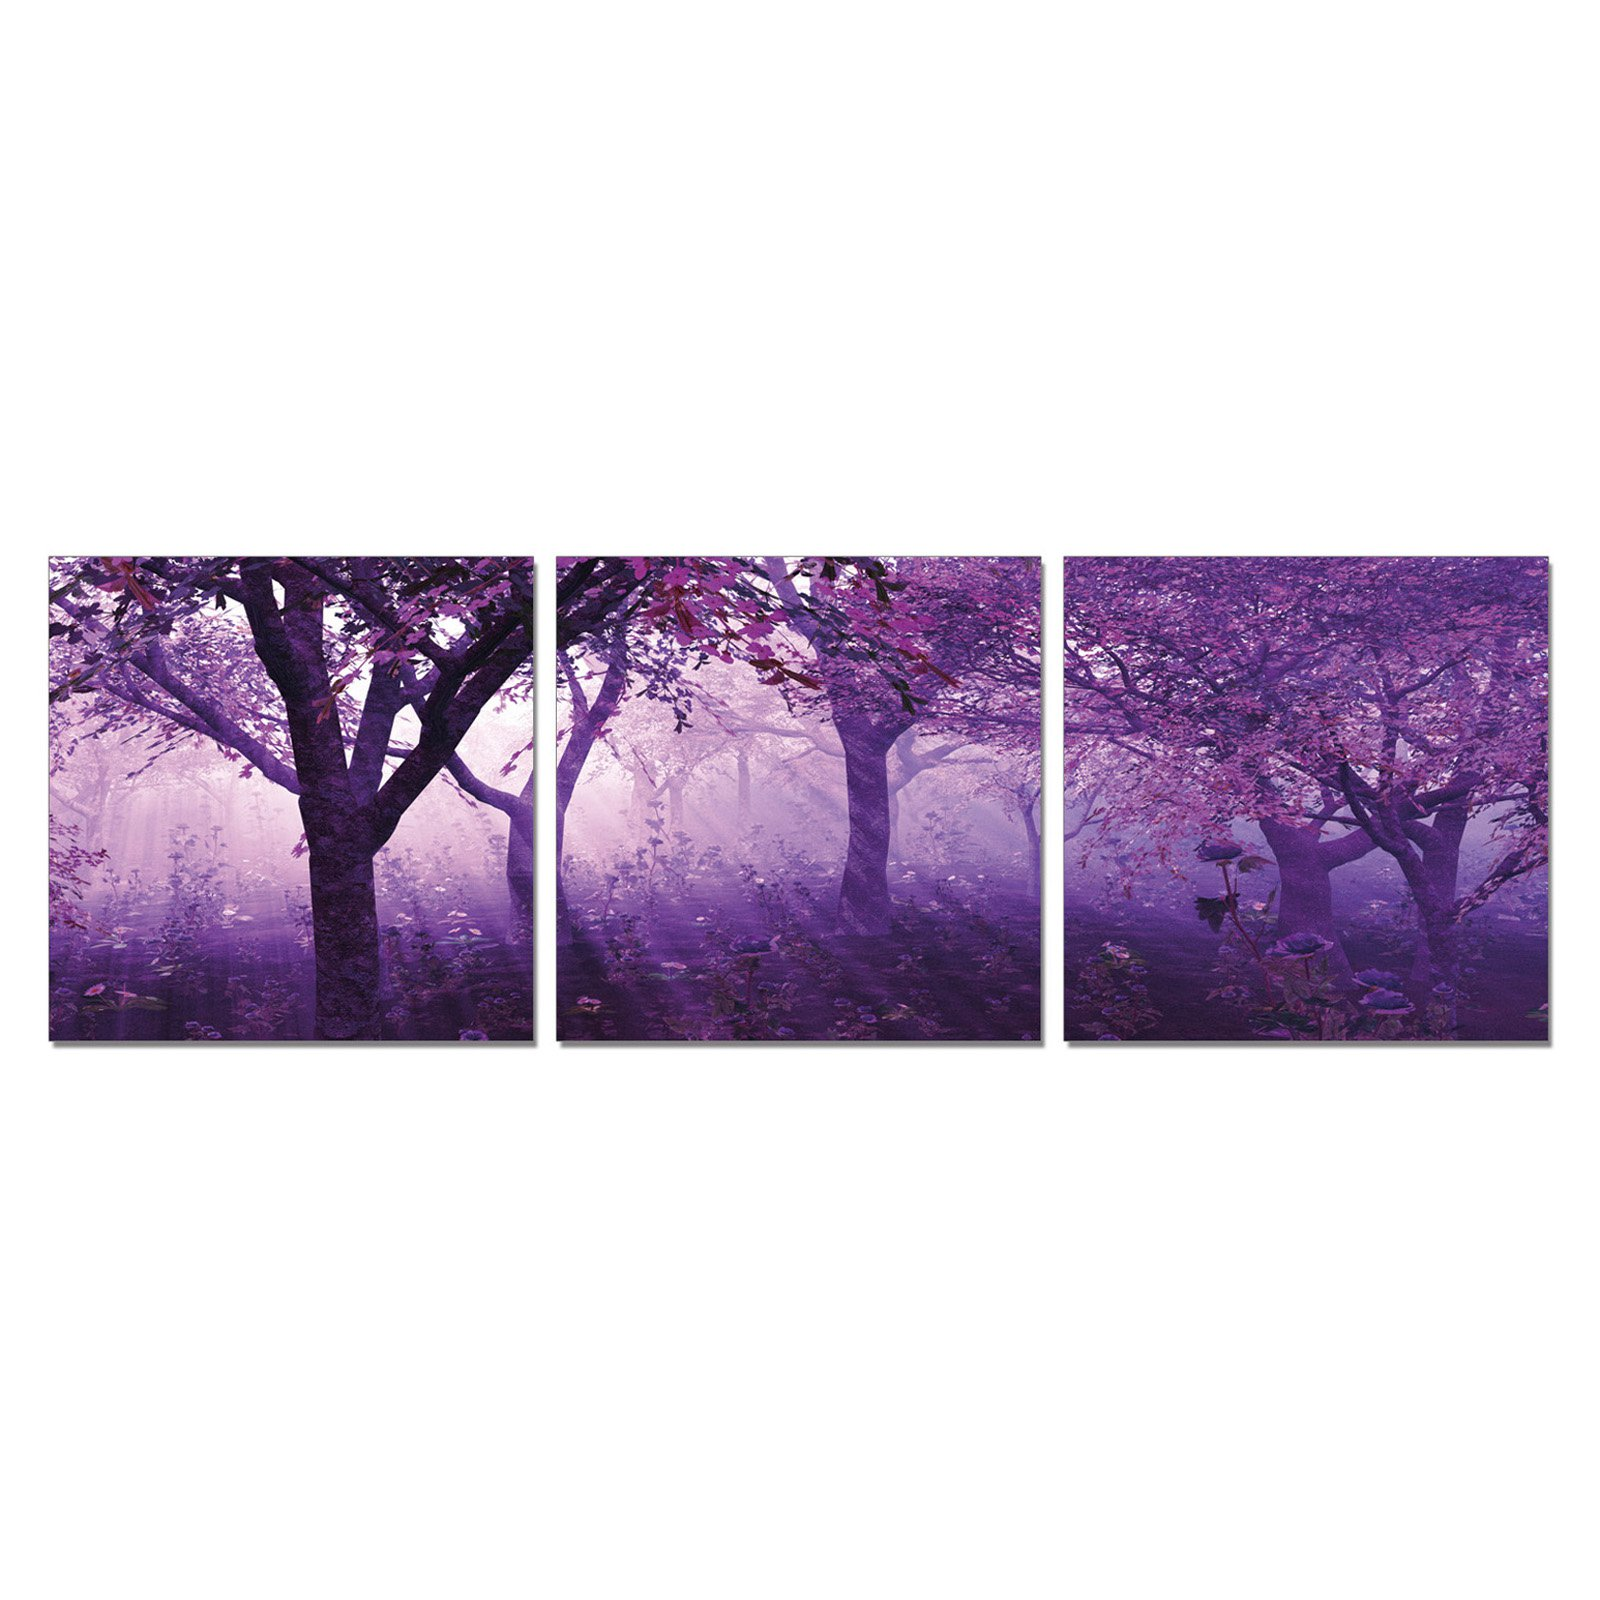 Furinno SENIC Purple Trees 3-Panel Canvas on Wood Frame, 60 x 20-in